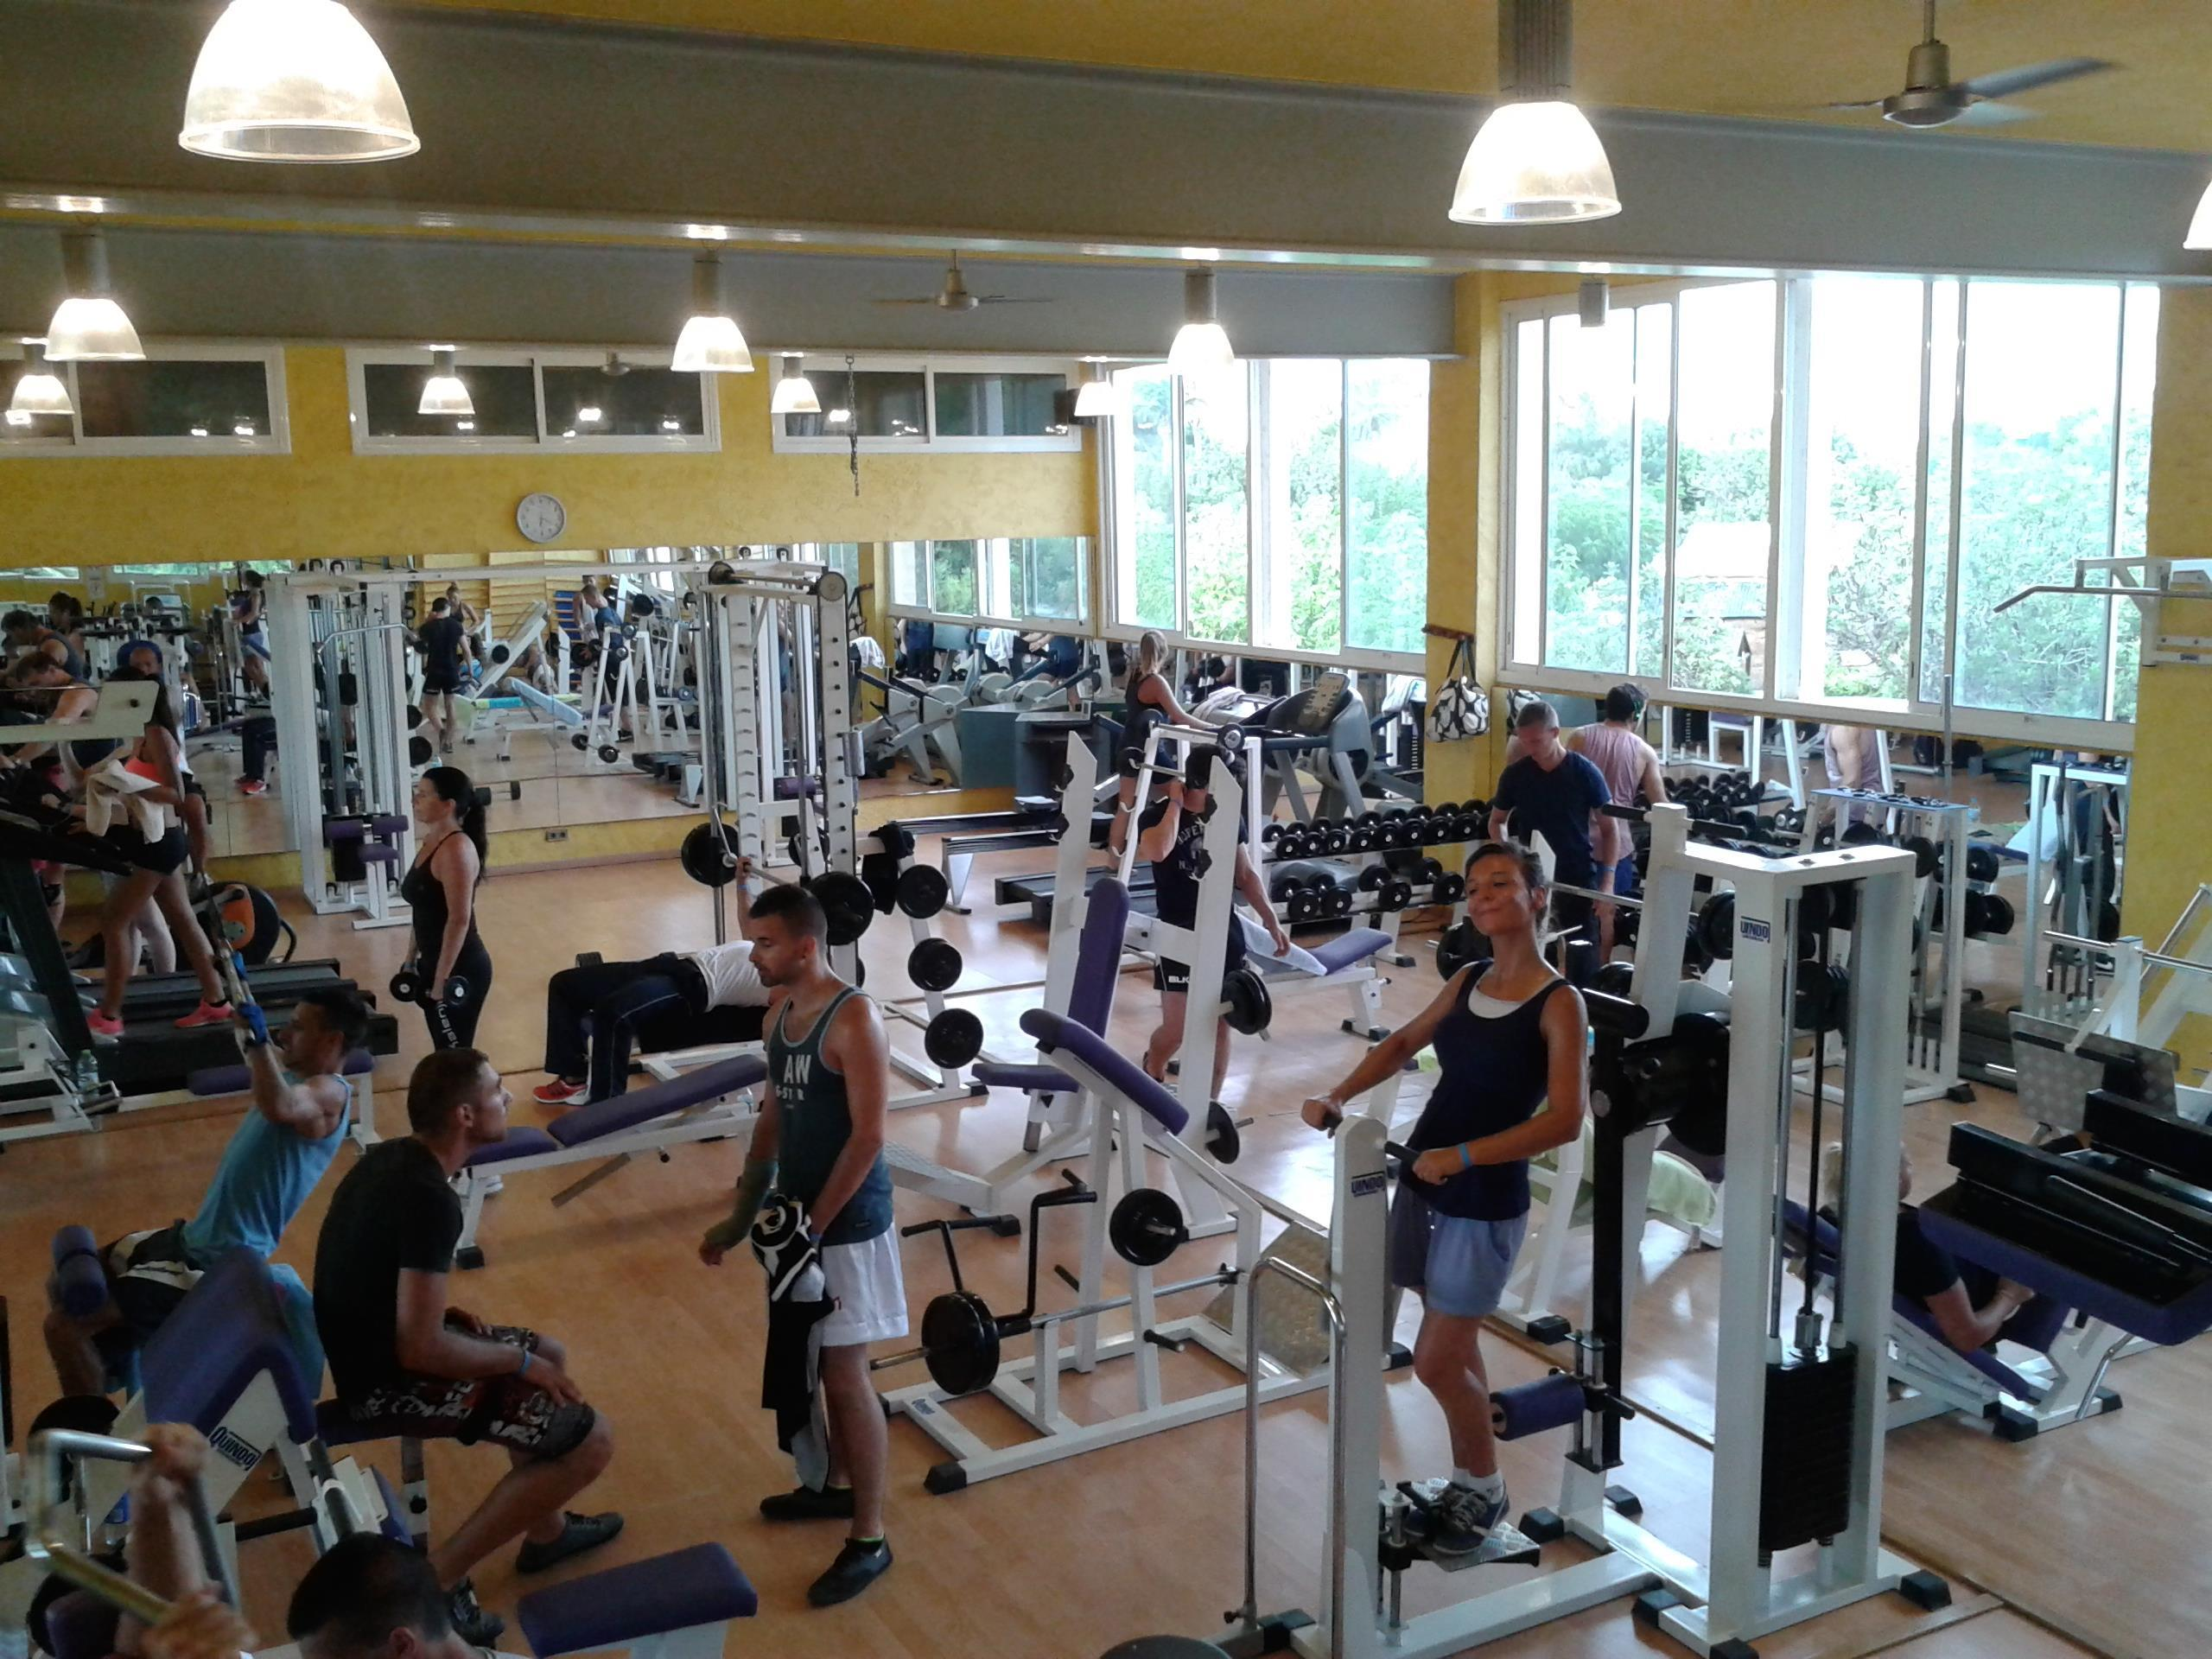 Fitness room fitness centre sport activities